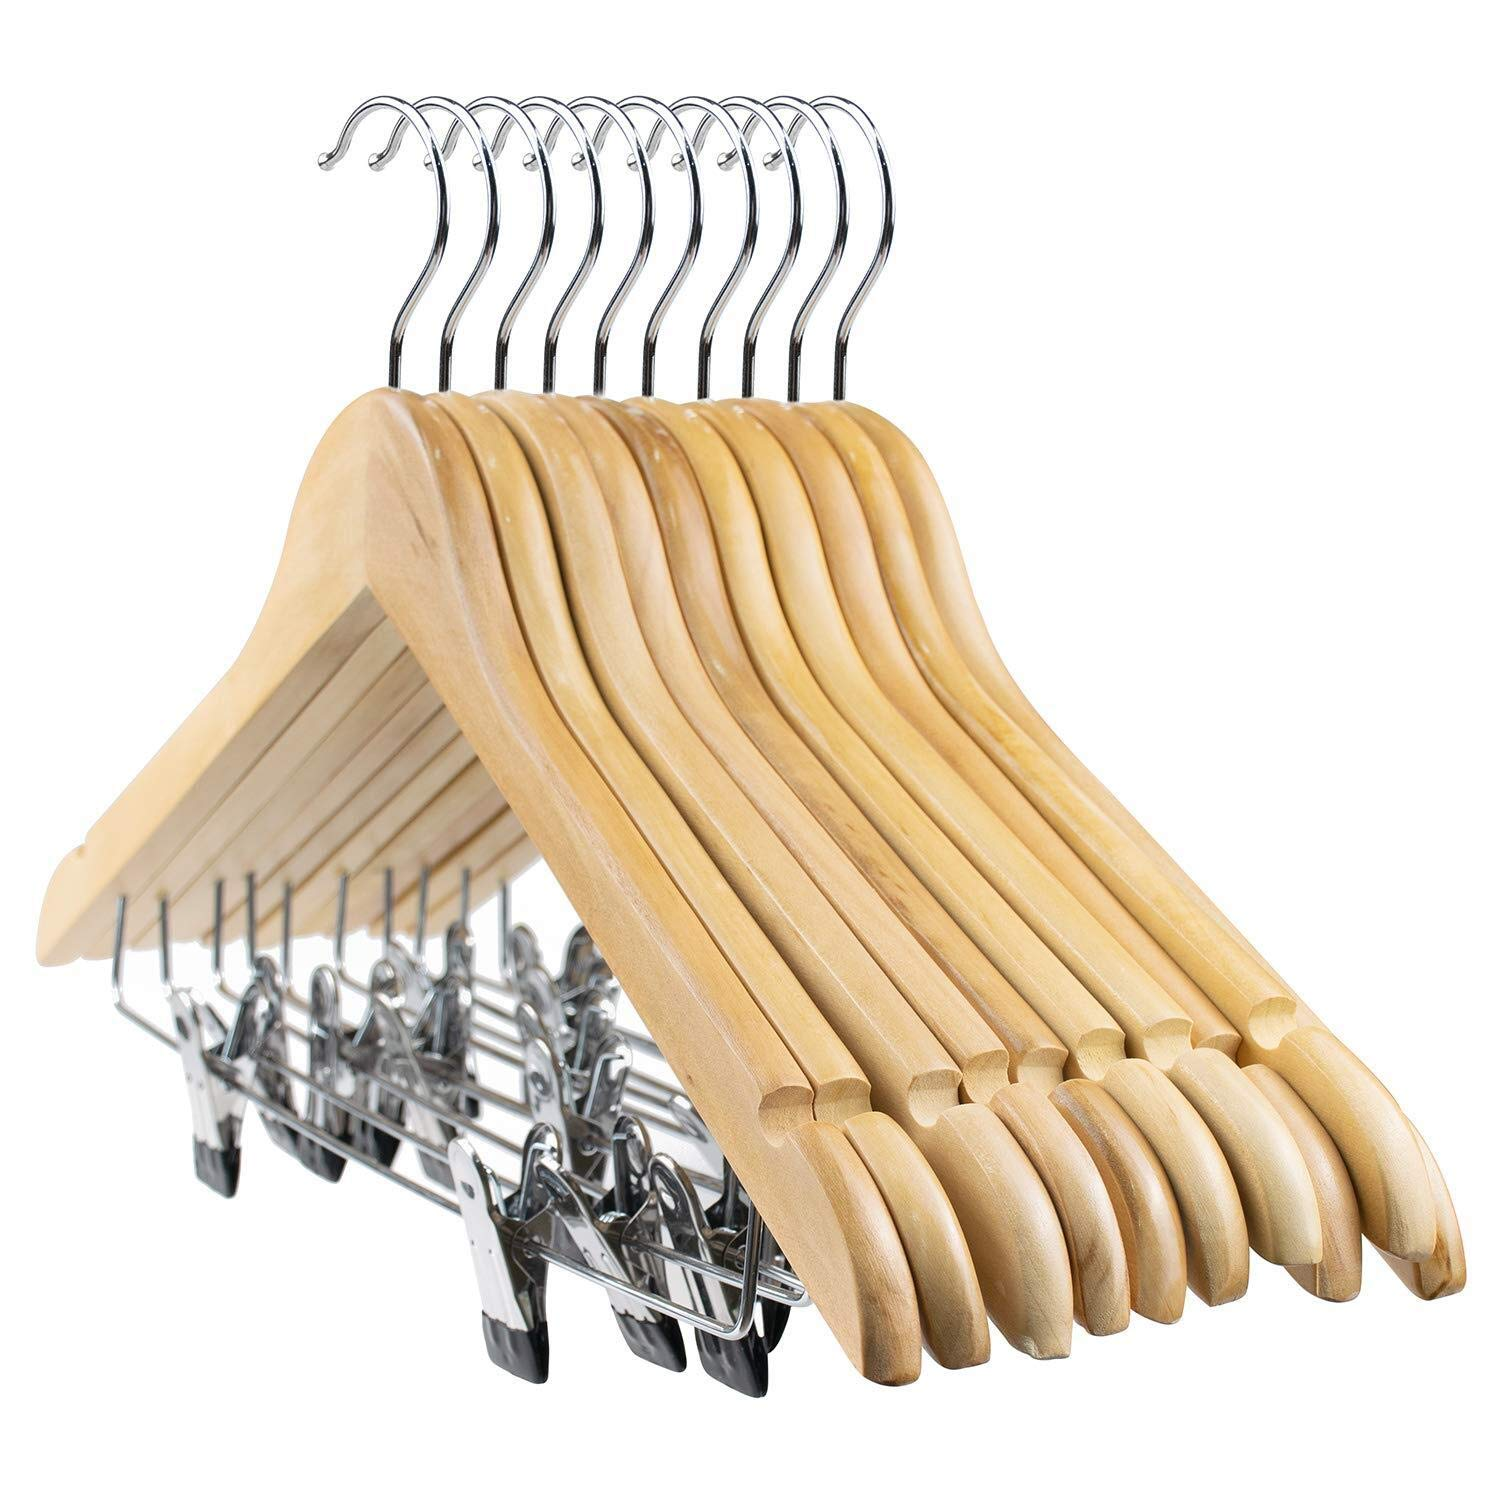 Tosnail 10-Pack Wooden Pant Hanger, Wooden Suit Hangers with Steel Clips and Hooks, Natural Wood Collection Skirt Hangers, Standard Clothes Hangers by Tosnail